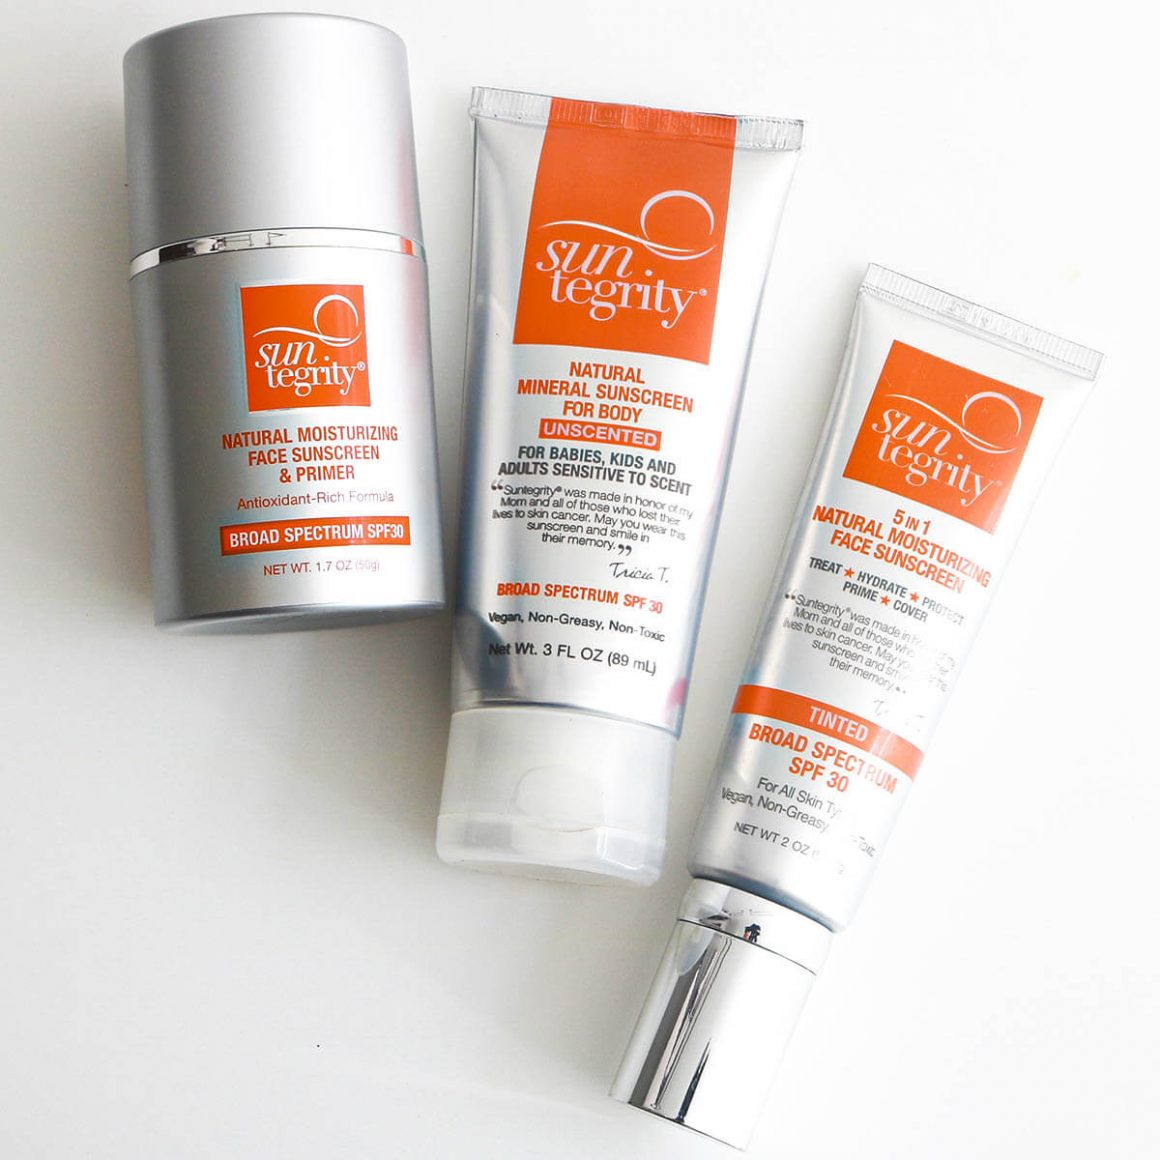 Shop Suntegrity Canada and USA, 5in1 Tinted Face Sunscreen, Face Sunscreen & Primer, Unscented Mineral Body Sunscreen